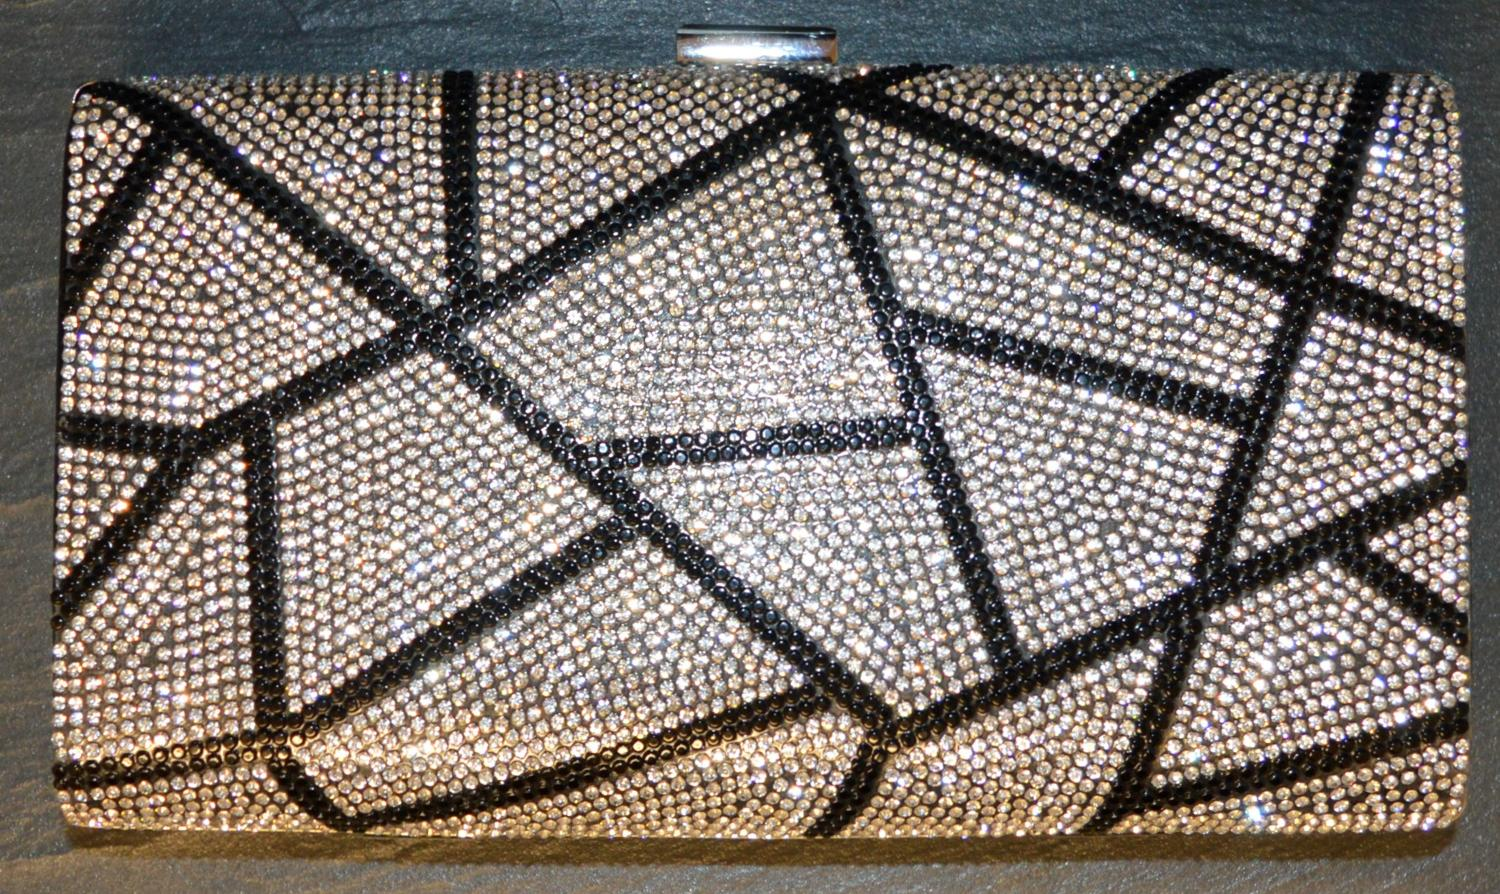 Geometric Diamante Patterned Clutch Bag